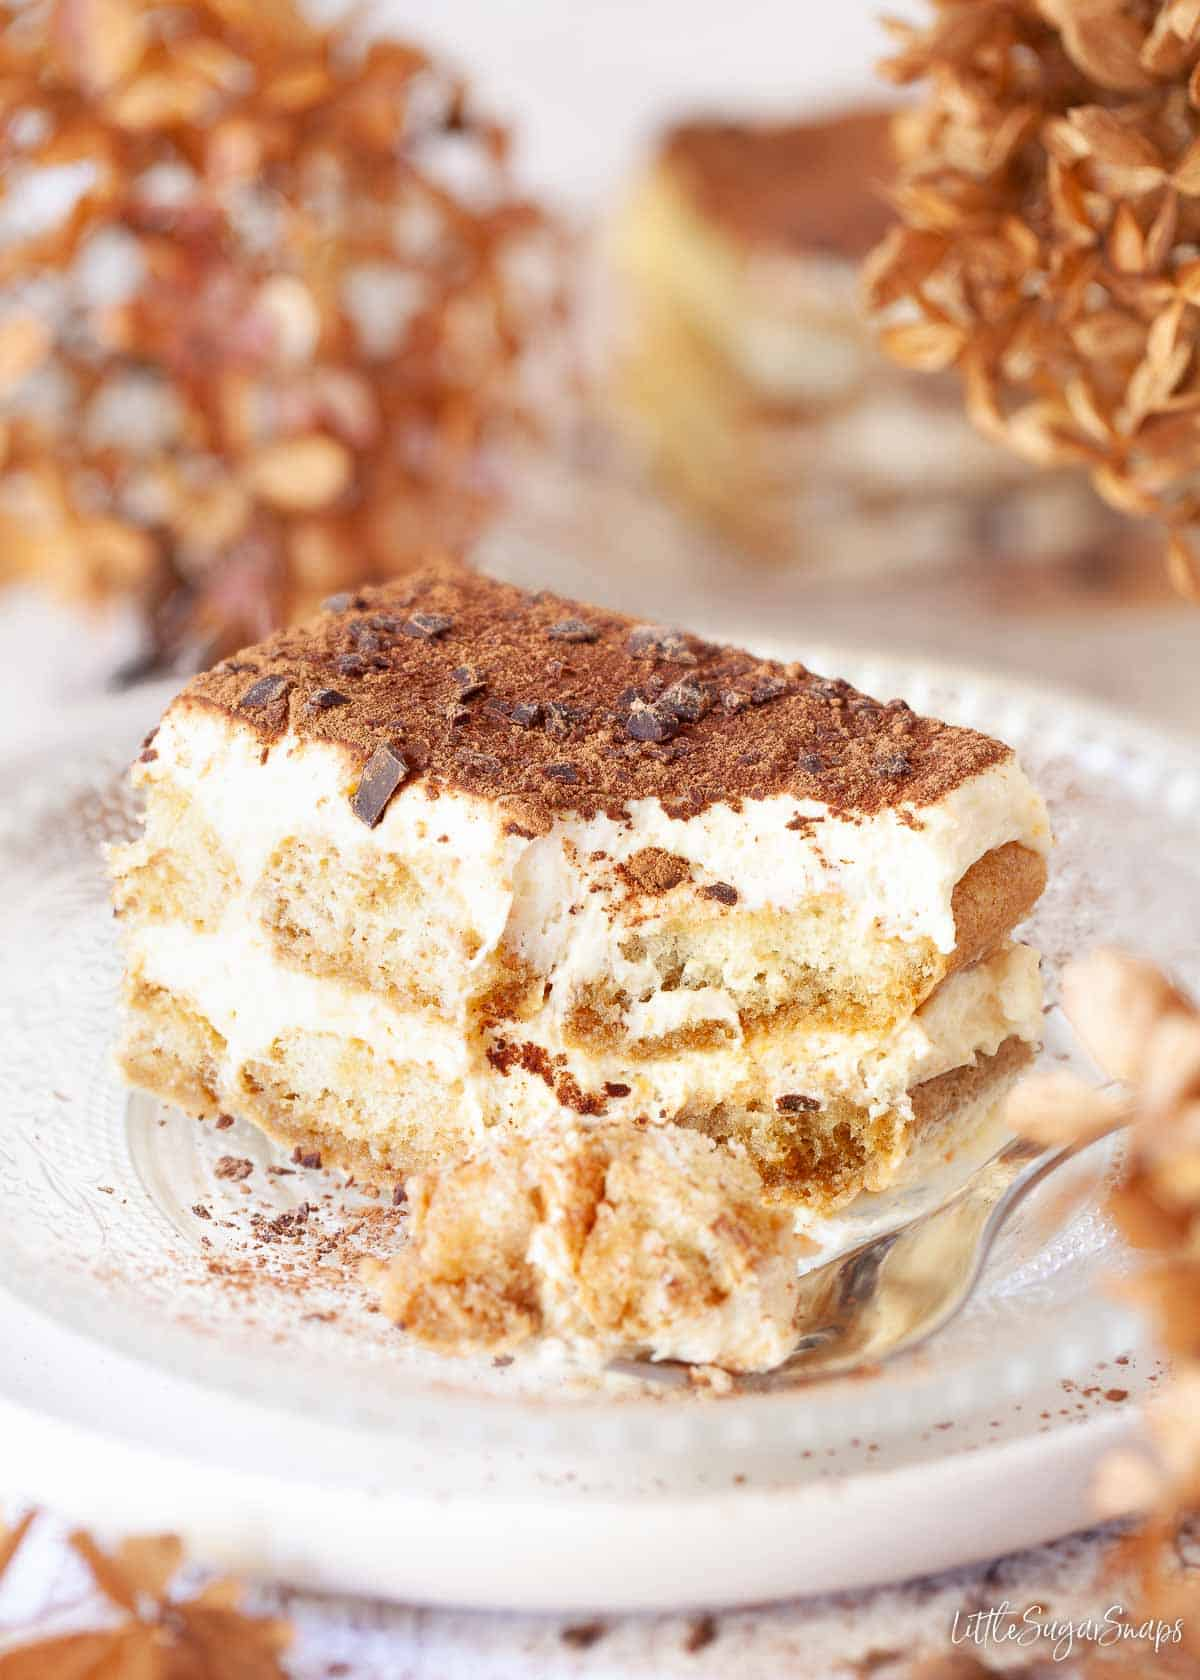 A piece of Italian tiramisu with a chunk taken out using a fork